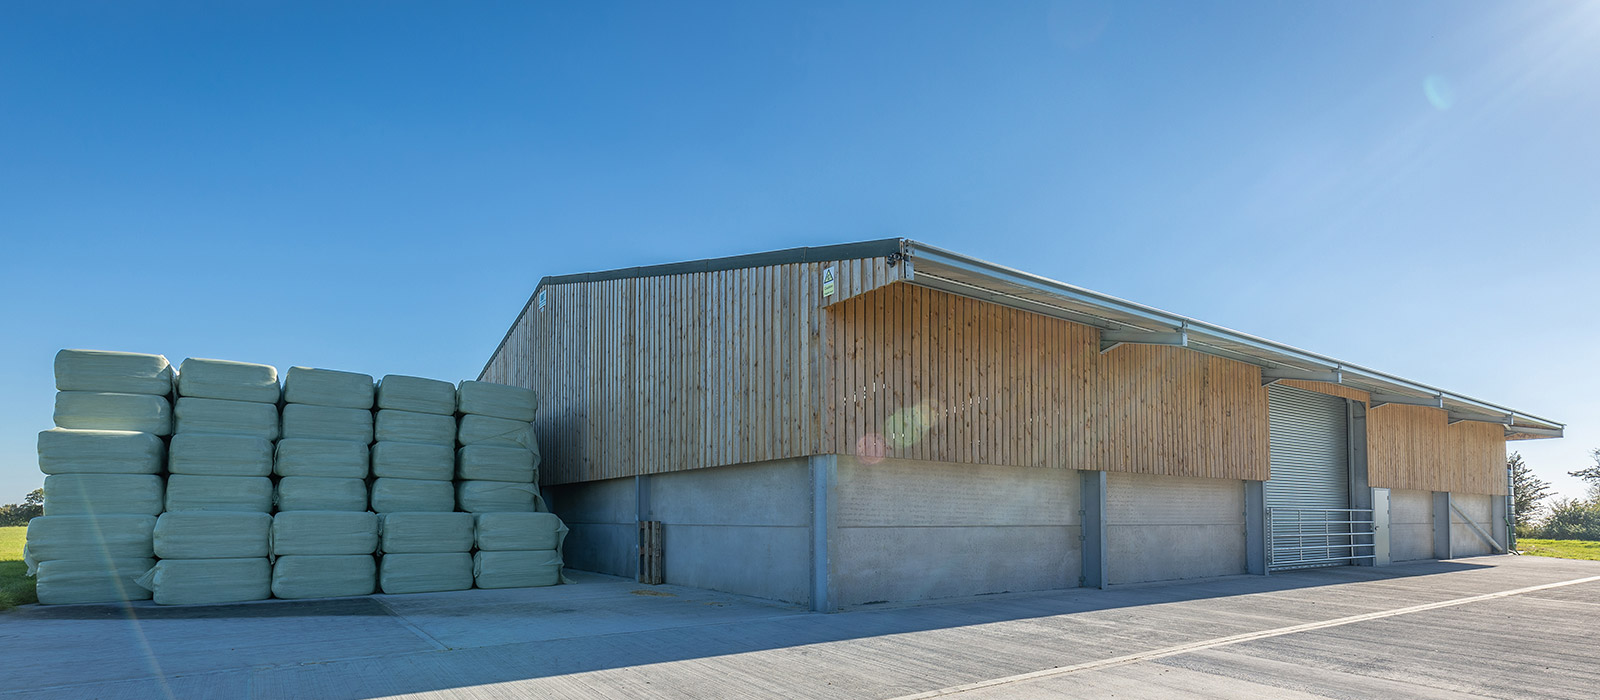 gyd architecture | half clad timber finished agricultural building